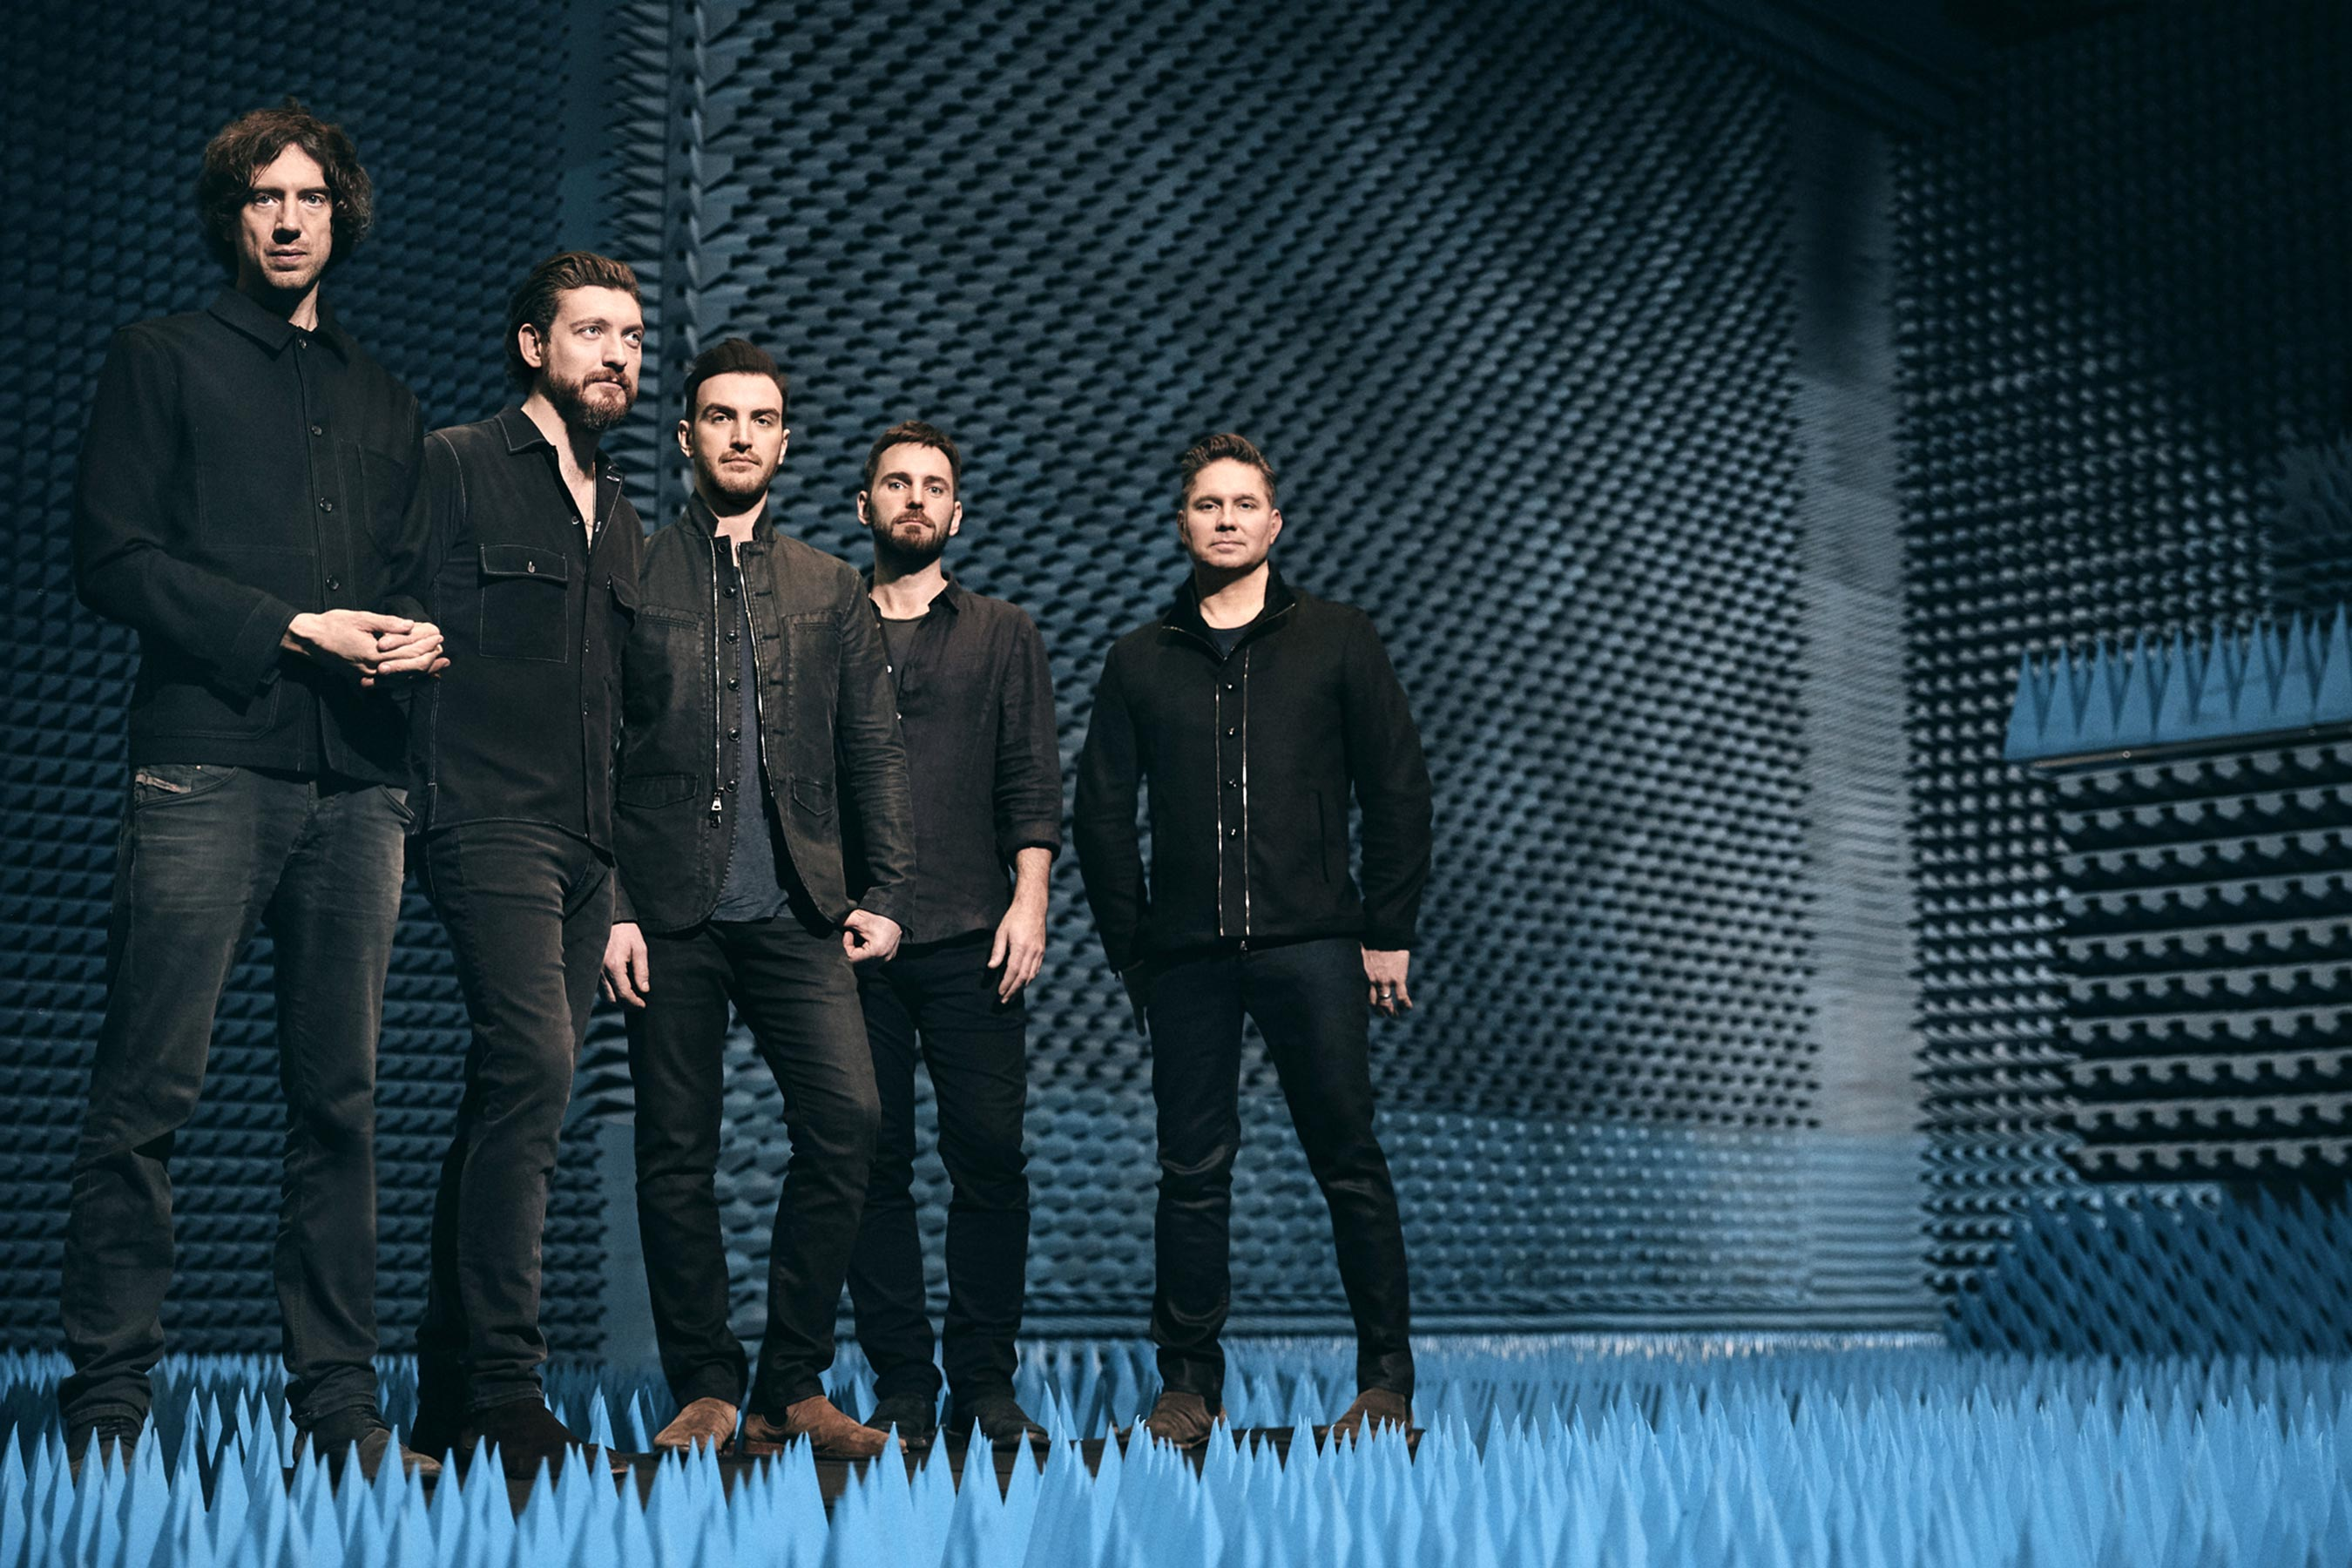 Snow Patrol announces first album in 7 years